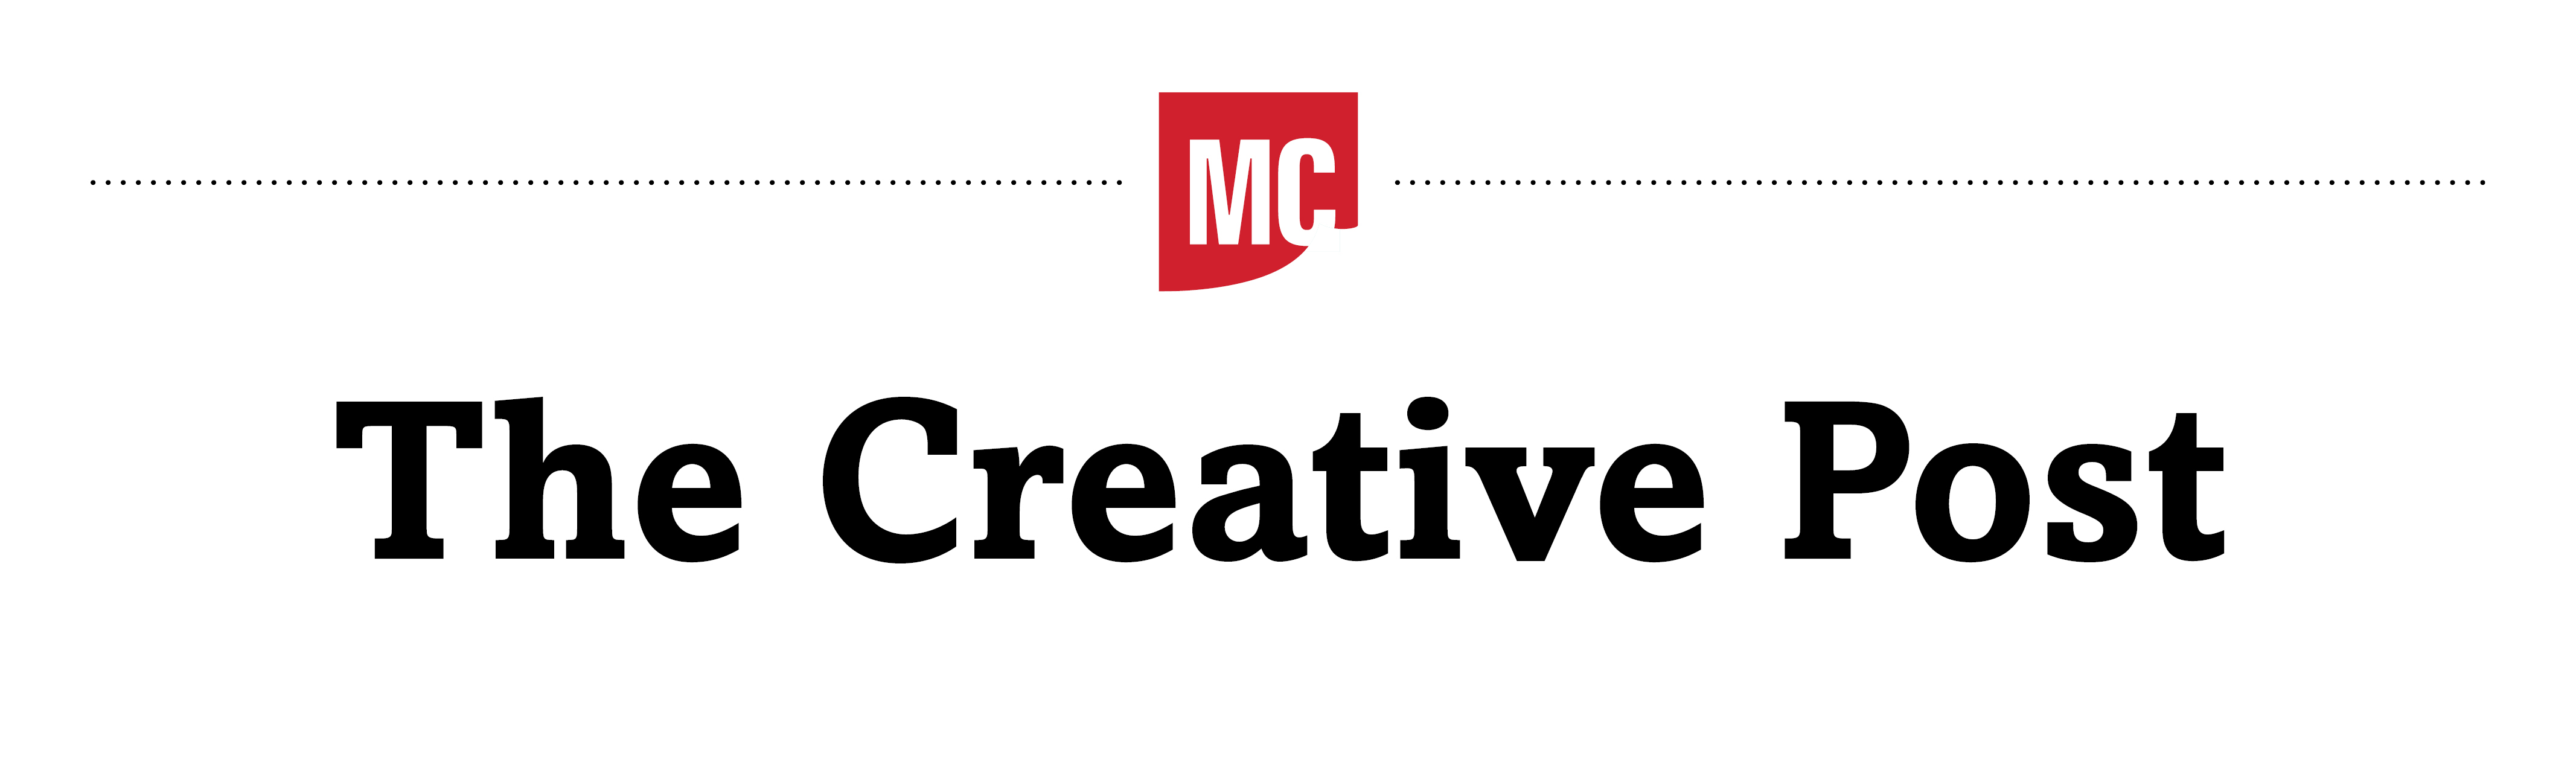 The Creative Post